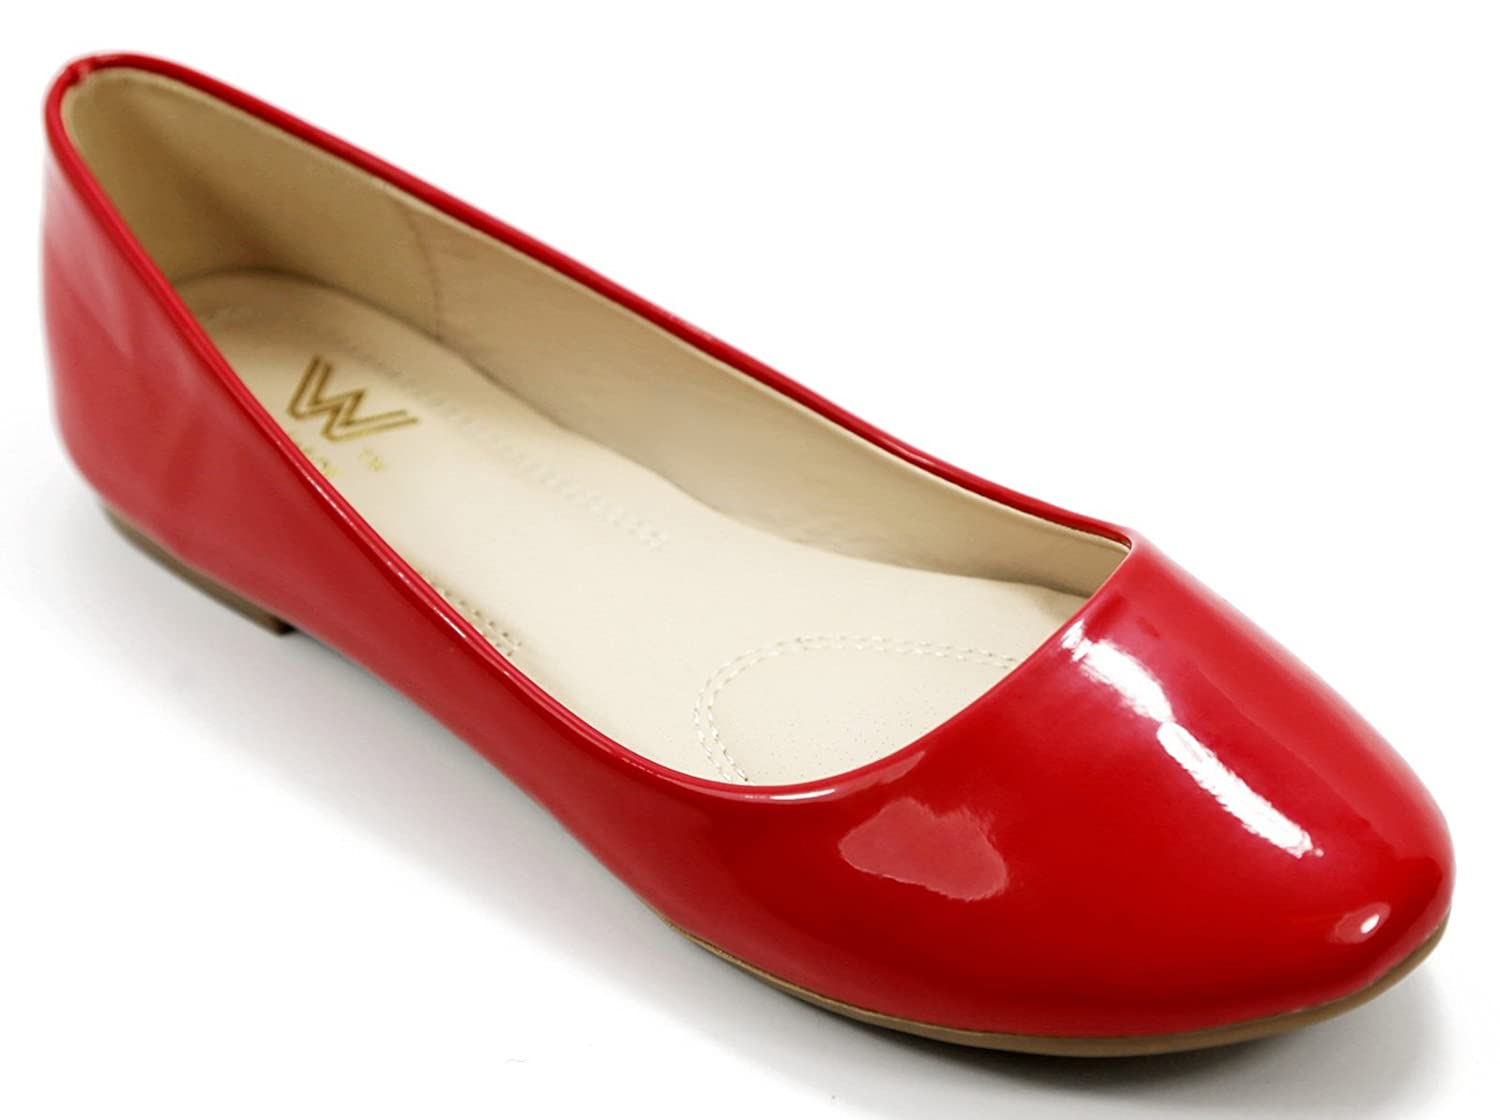 Walstar Women's Basic Round Toe Ballet Flat Shoes B015YJ3F76 7 B (Run Small, Order 1/2 size UP) Red Patent